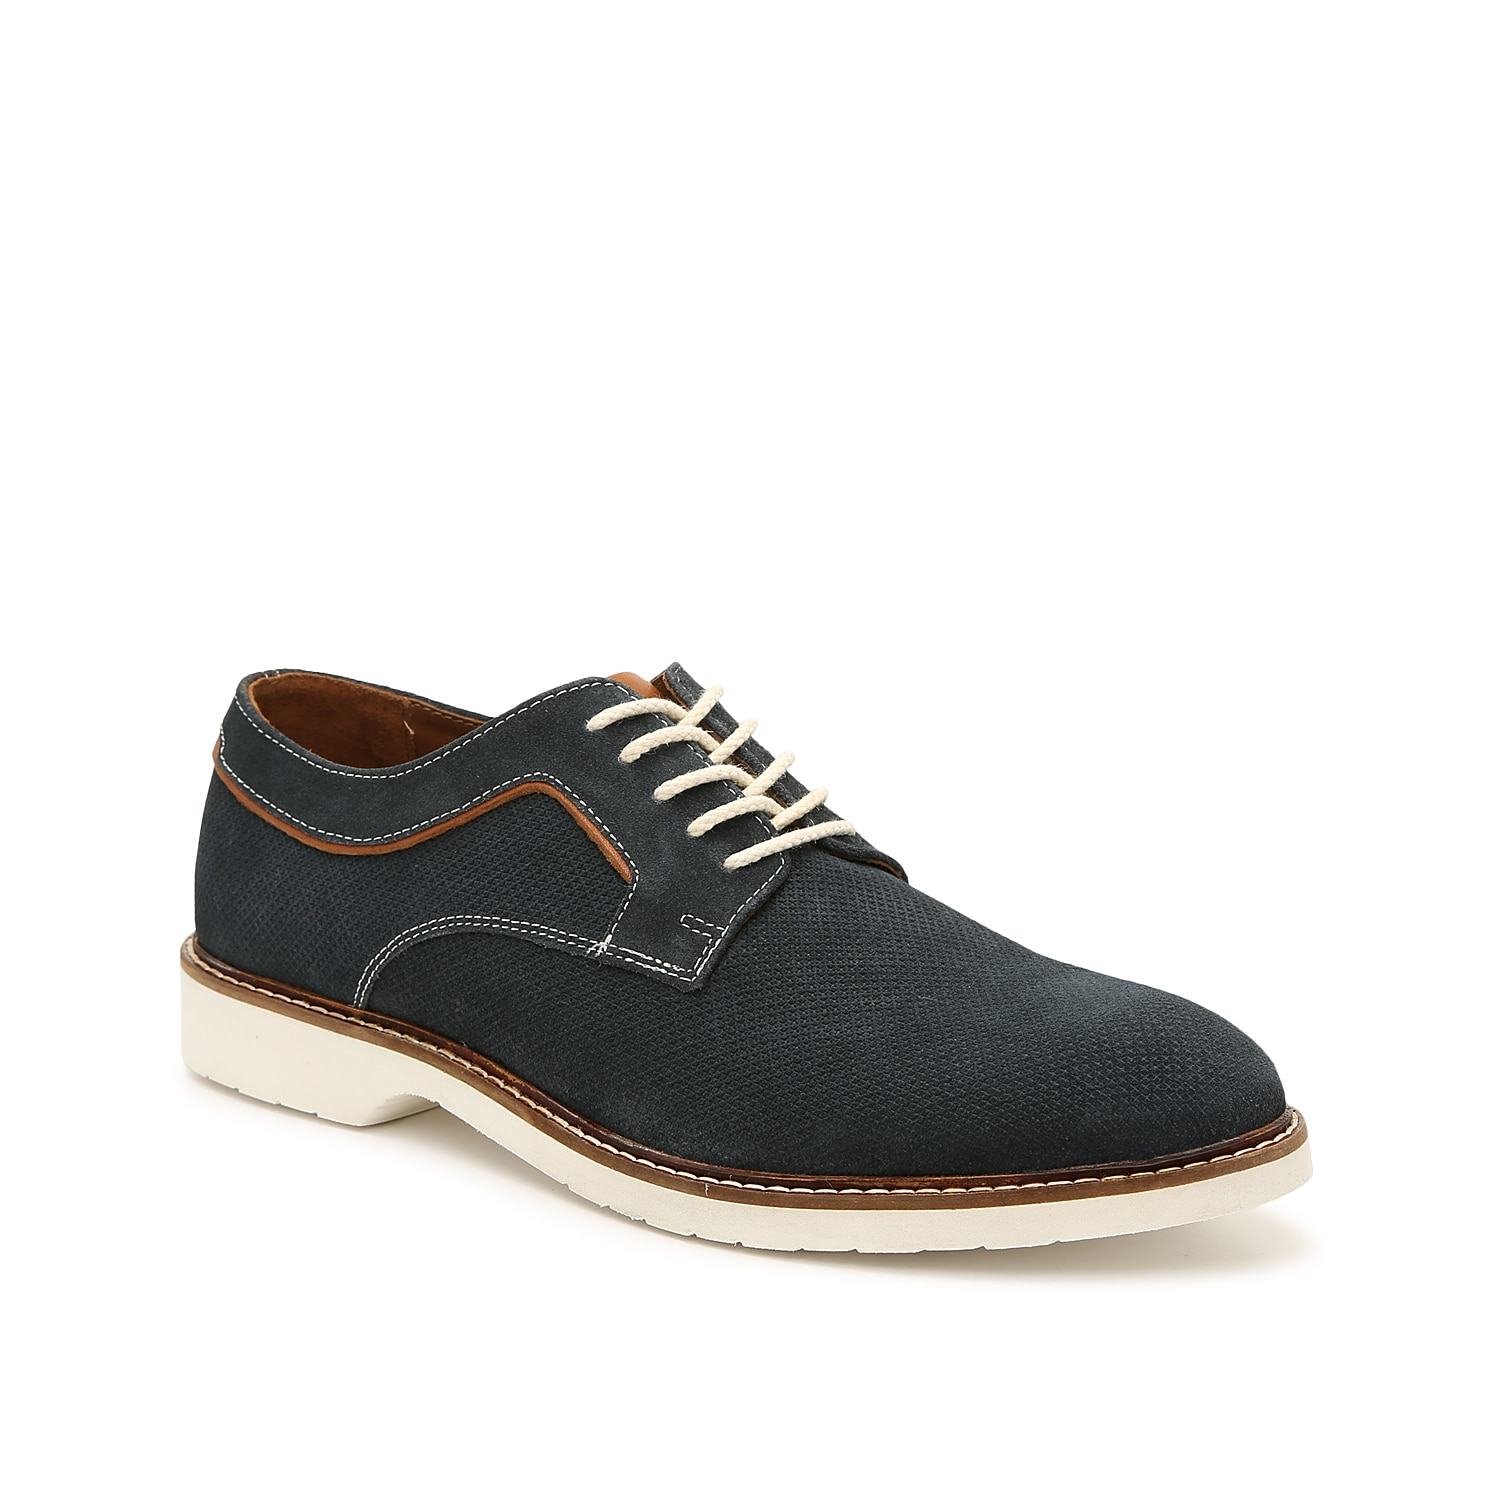 Textured suede and braided rope laces bring craftsman quality to the Ledford oxfords from Johnston & Murphy. An all-white sole casualizes this pair, making them versatile enough to wear from work to weekend plans.